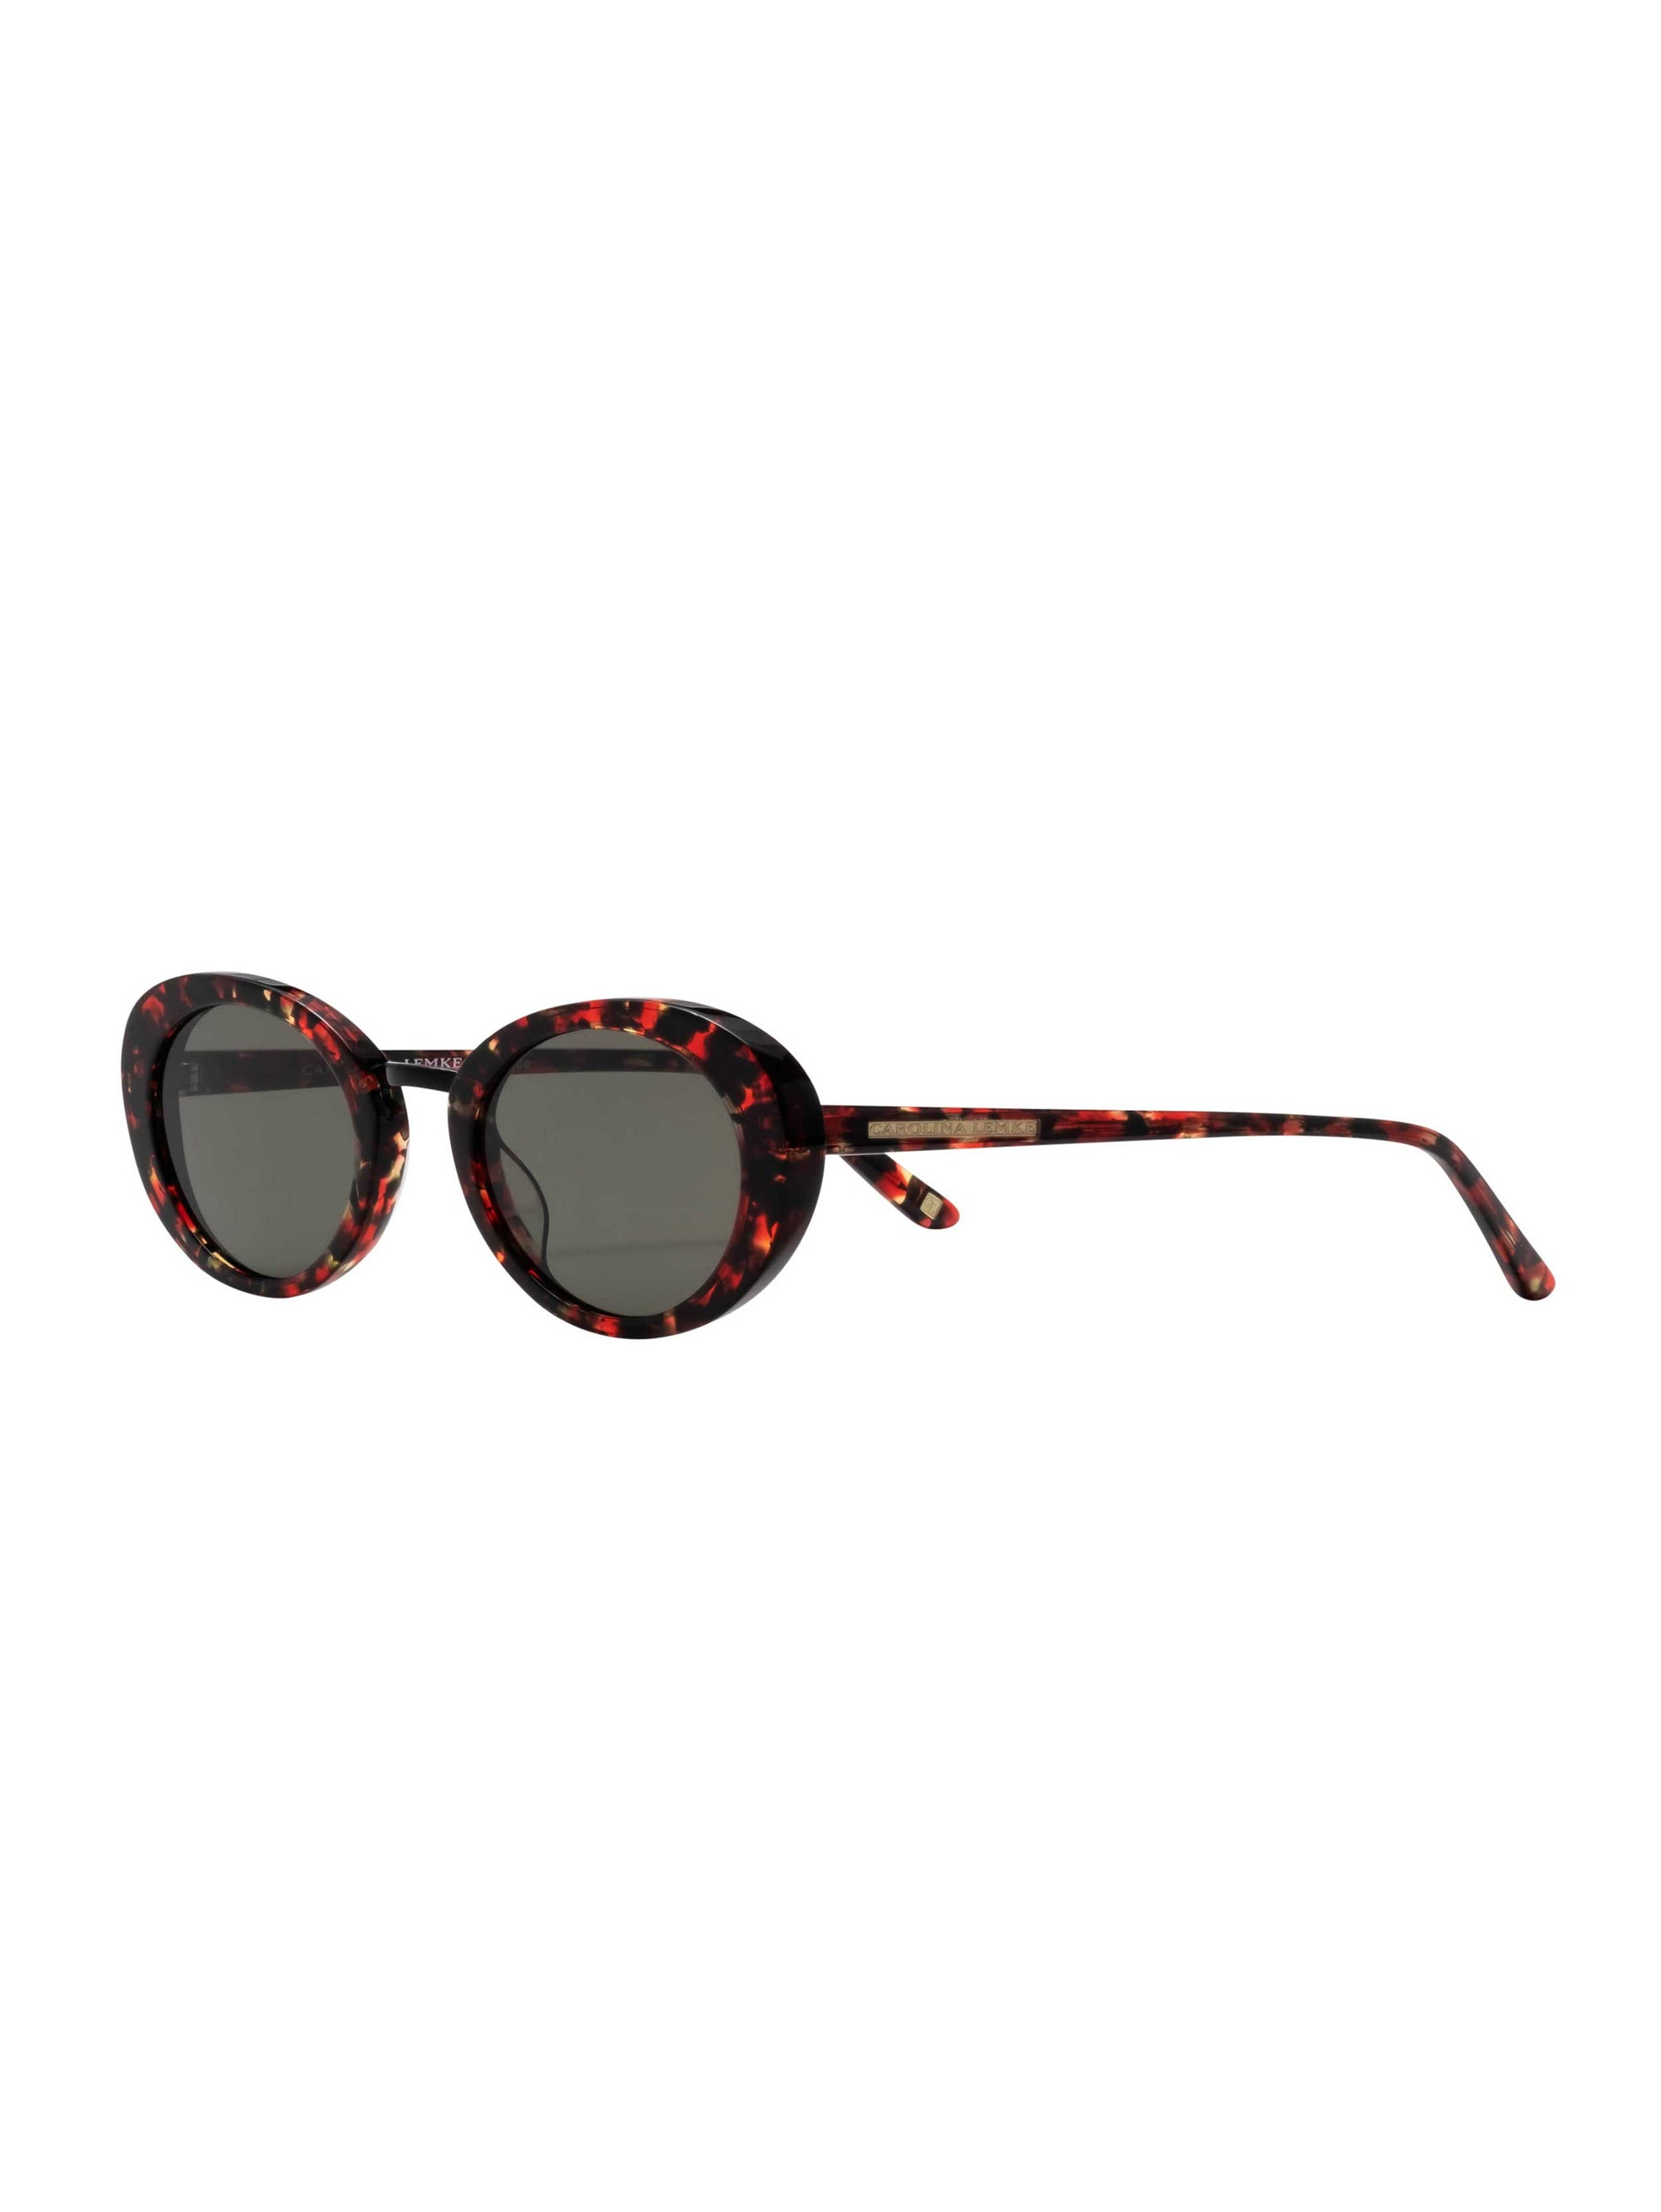 Lentes Carolina Lemke CL7729 02